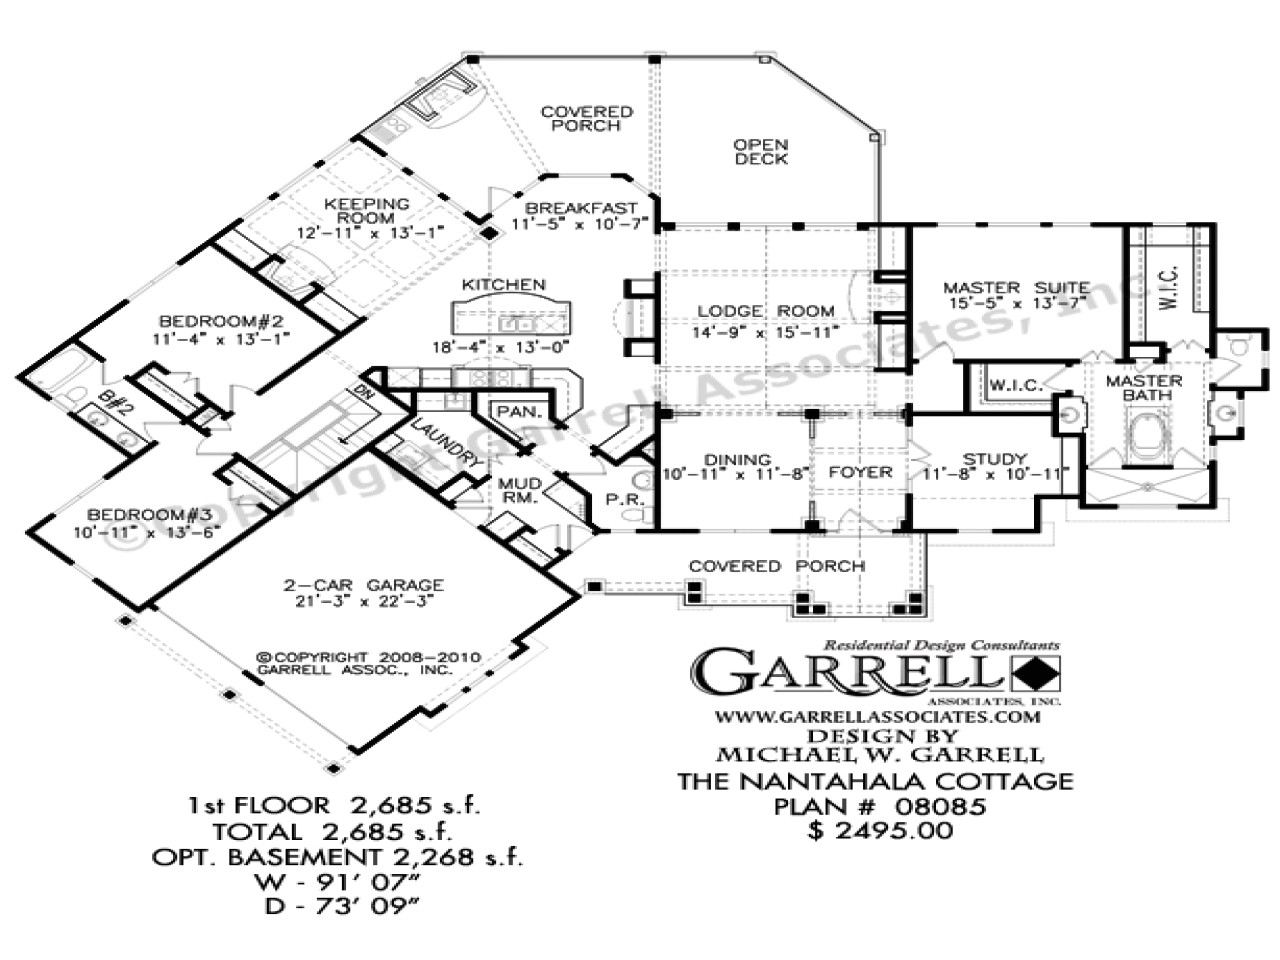 Luxury Mountain Home Floor Plans Rustic Luxury Mountain ... on hot springs cottage house plan, westbrook's cottage house plan, mill spring cottage house plan, marina village floor plan, tranquility house plan, lake lure cottage house plan, gaston house plan, cherokee cottage house plan, full basement lake house plan, achasta house plan, first floor house plan, holly springs house plan, meadow lane cottage house plan, sugarloaf cottage house plan, ranch style bungalow house plan, calabash cottage house plan,